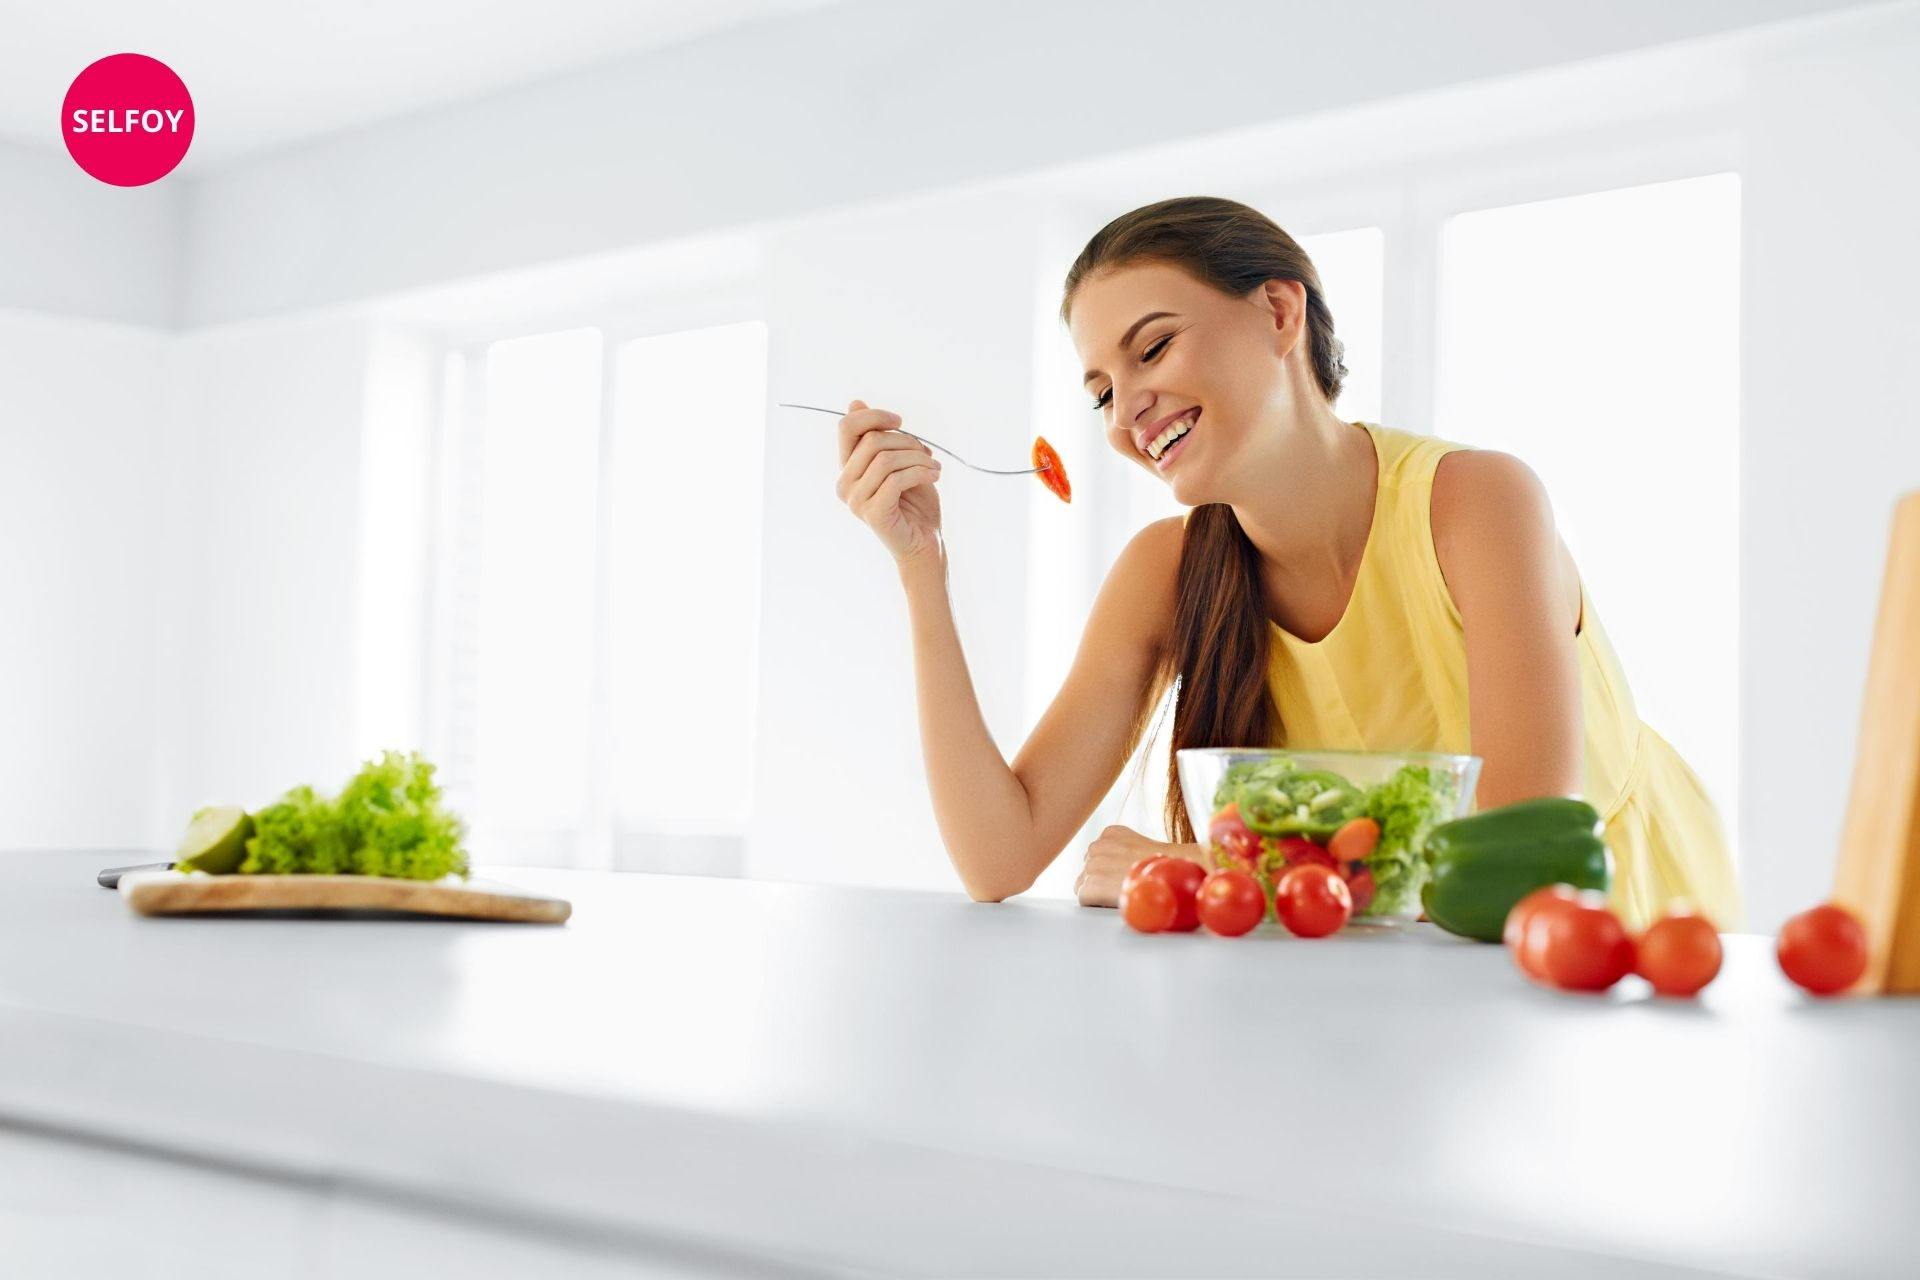 Woman wearing yellow top having spoon and eating salad